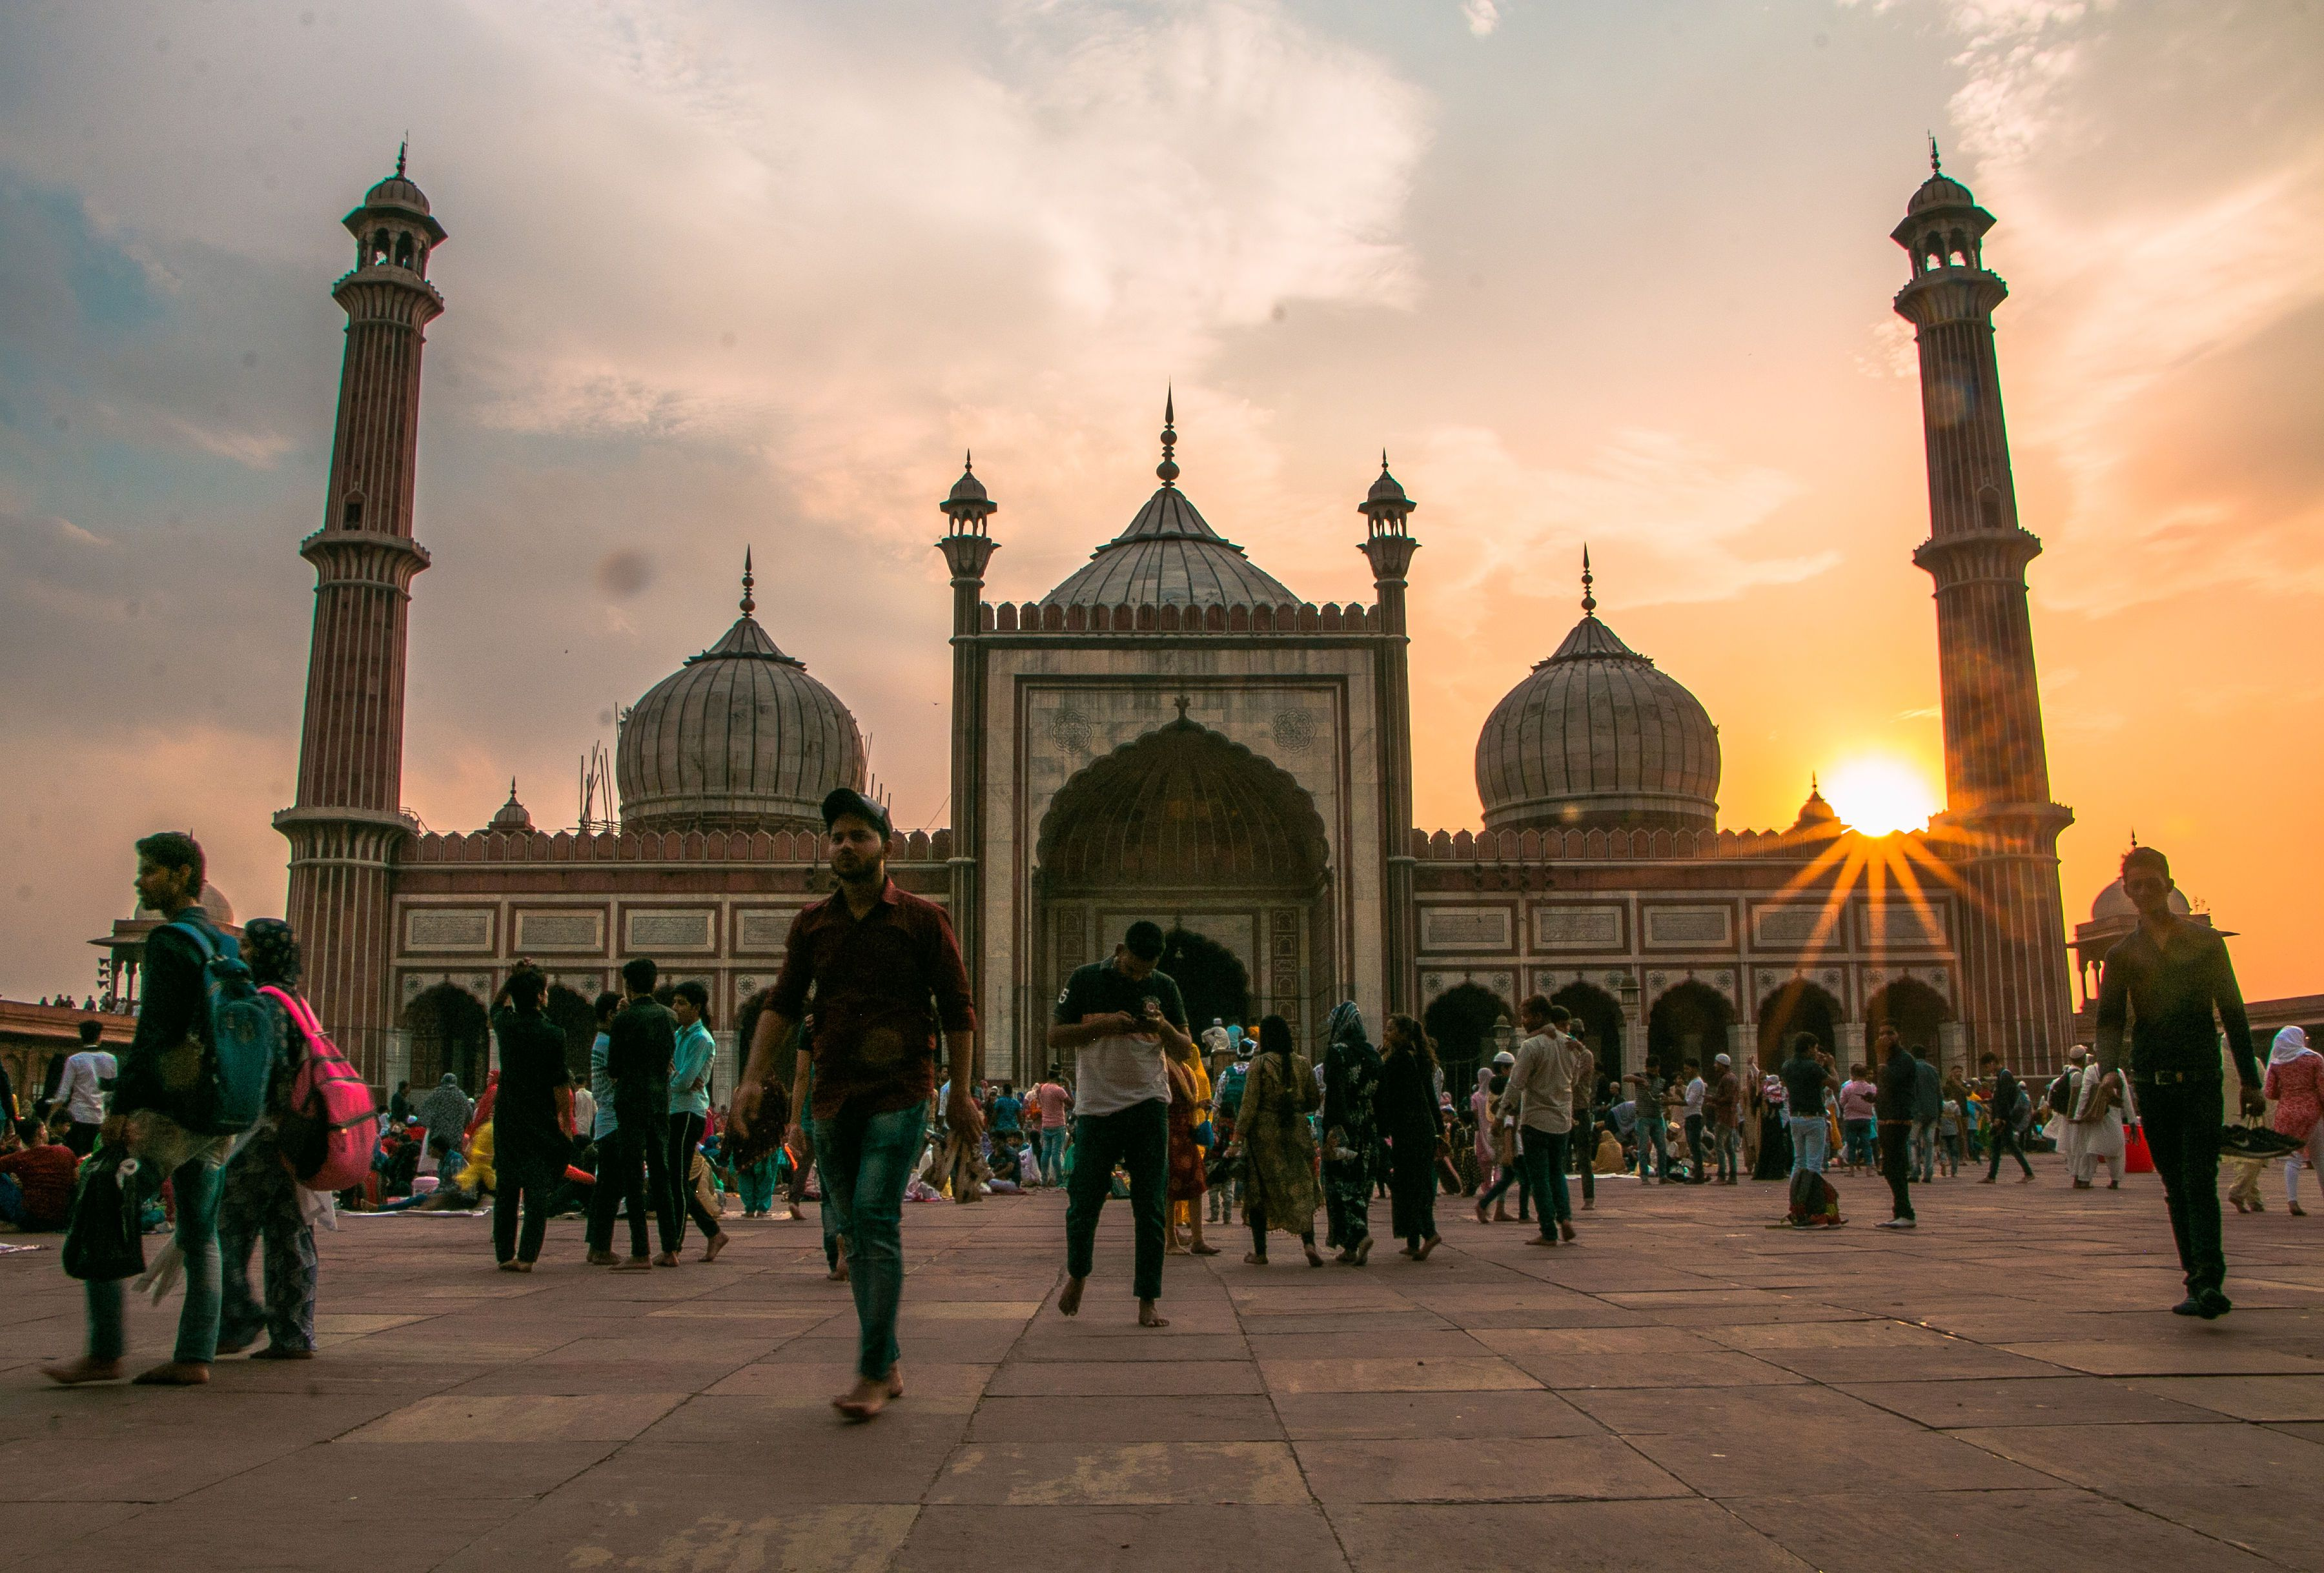 Delhis Jama Masjid Mosque The Complete Guide